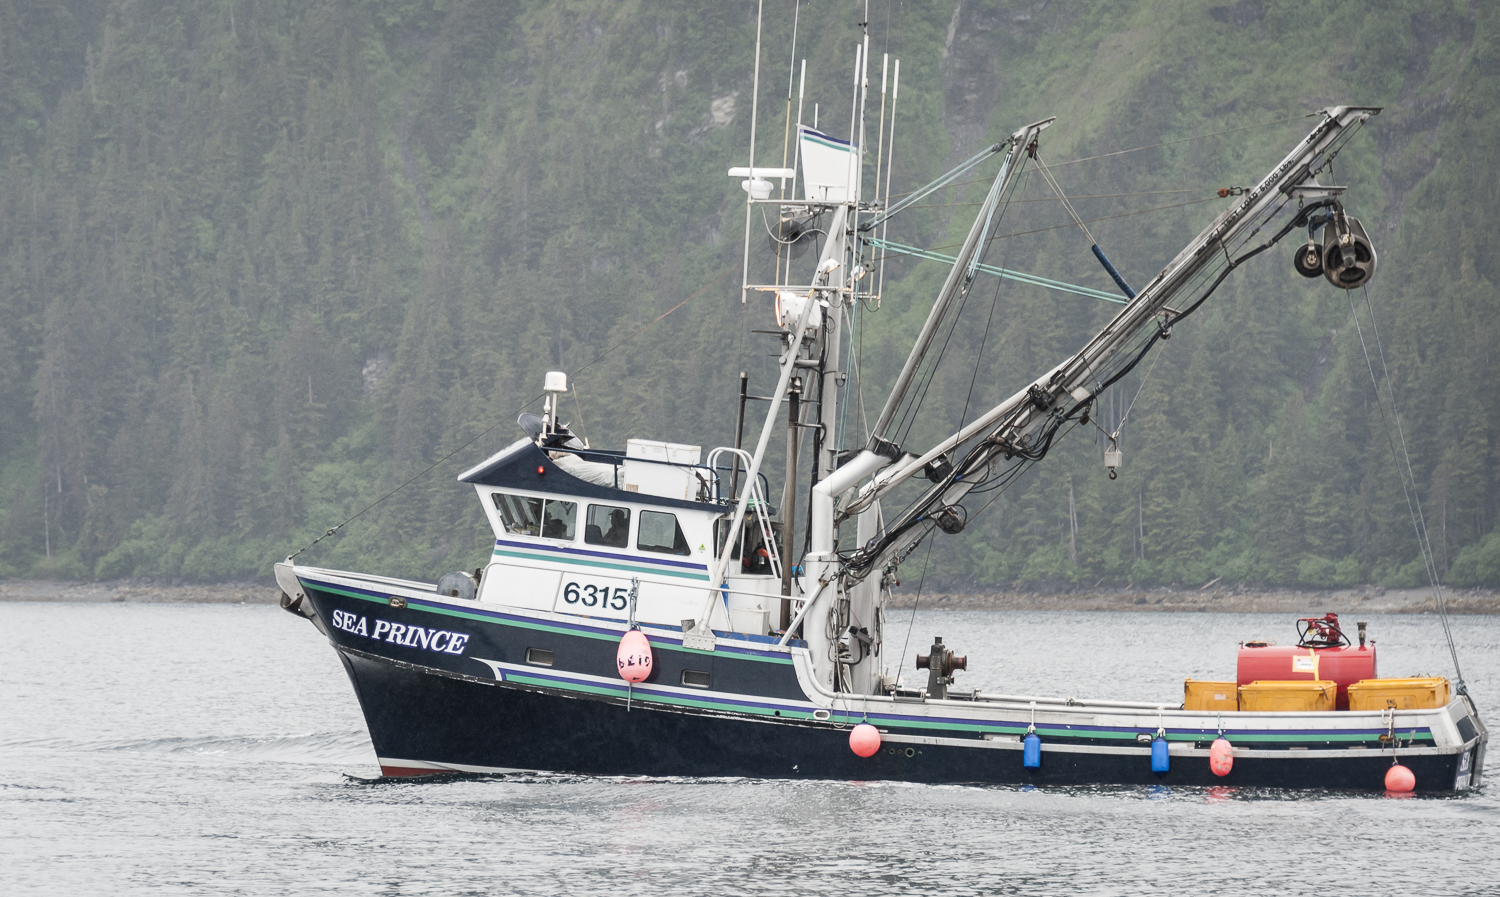 One of the thousands of fishing boats we passed in Prince William Sound